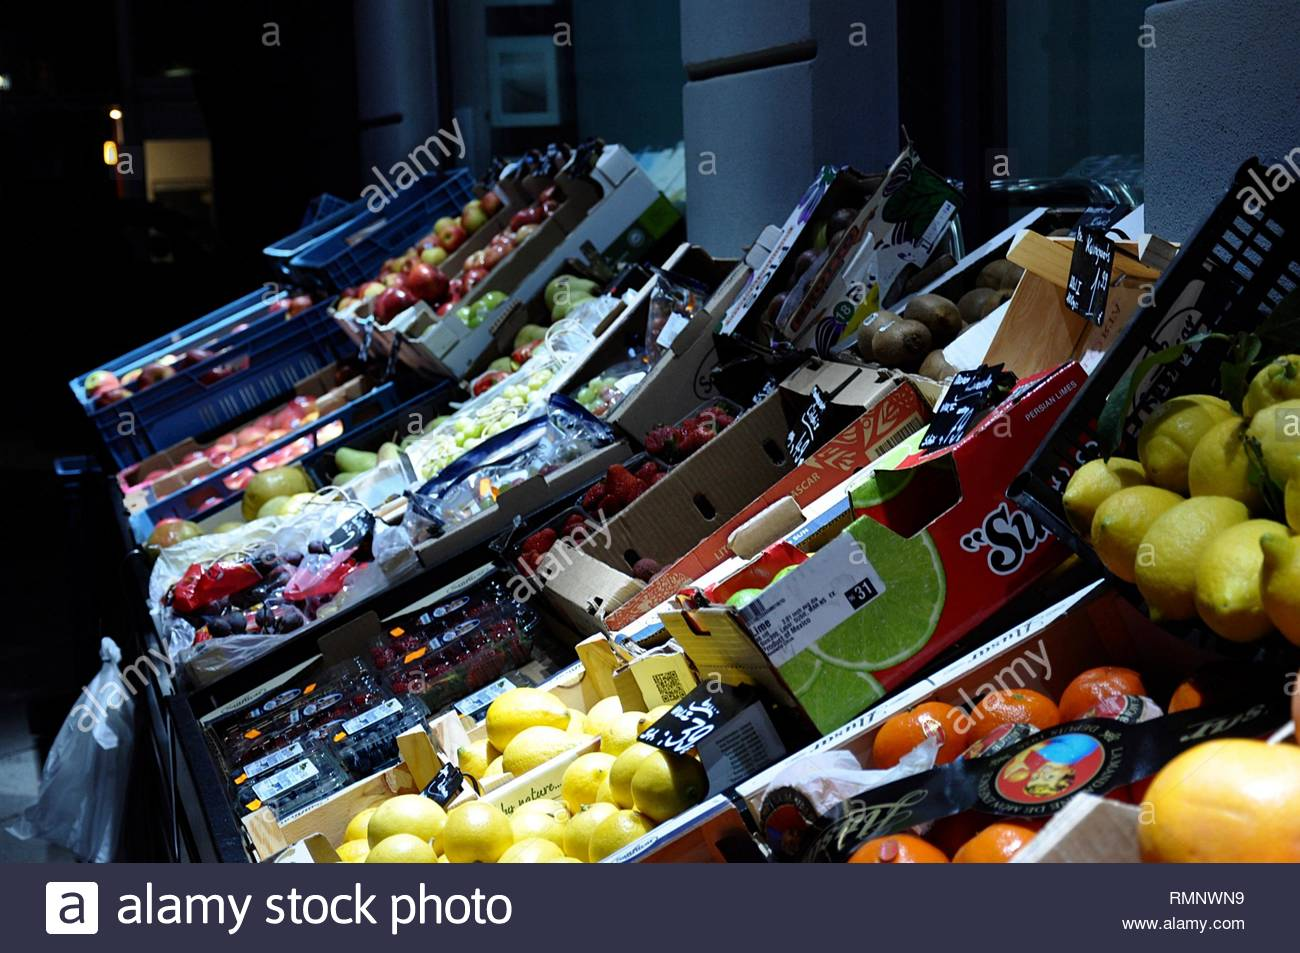 Fruits on market at night - Stock Image